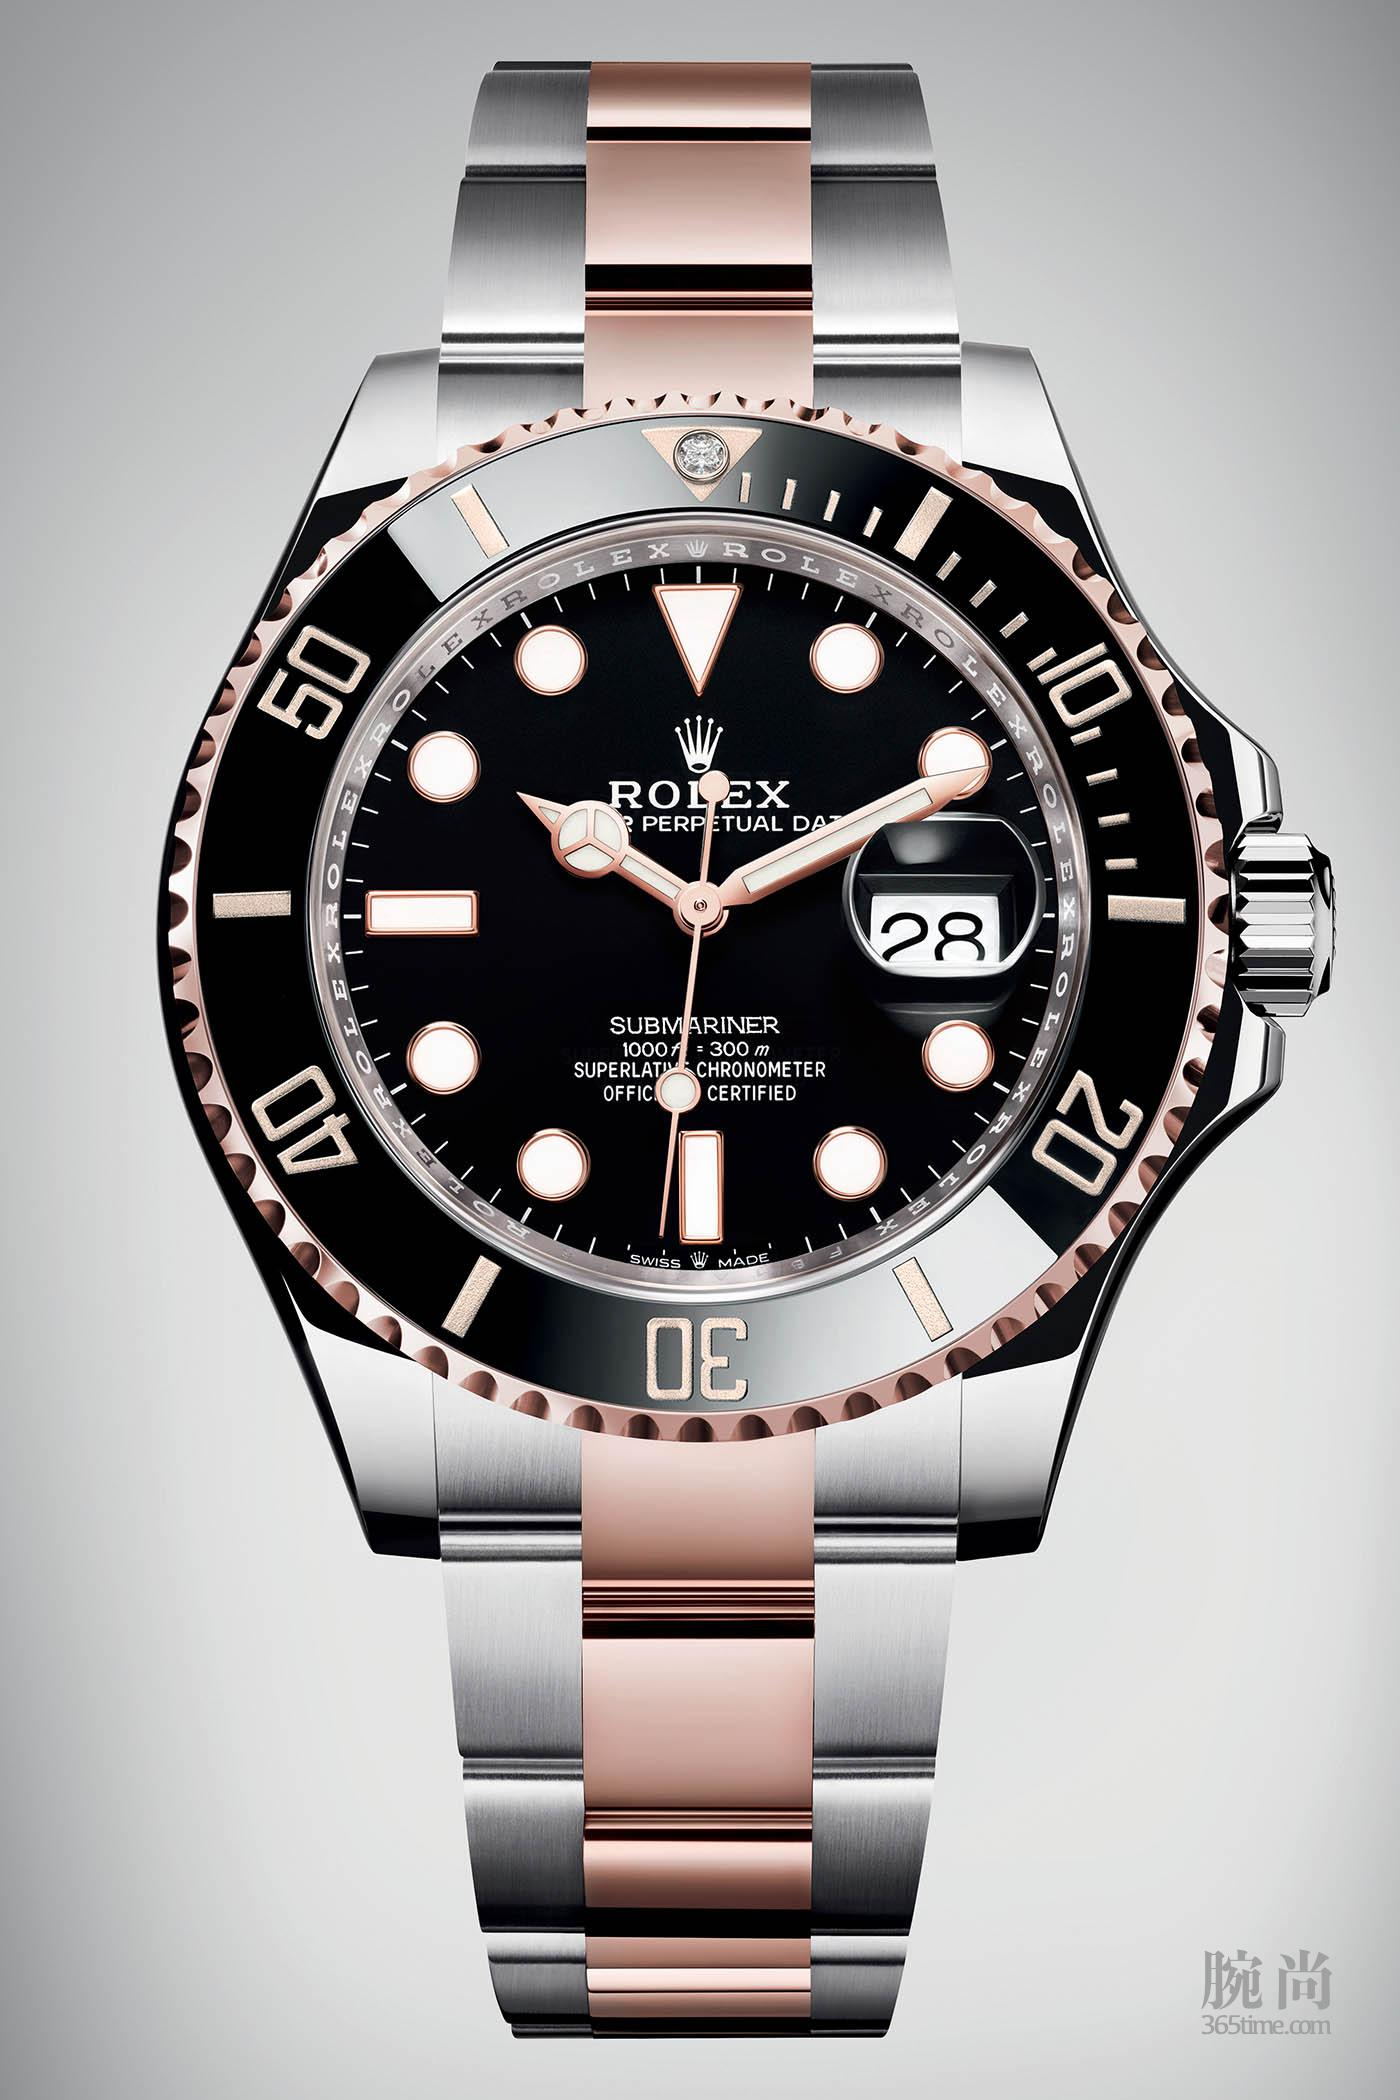 Rolex-Submariner-36-Rolesor-Everose-Rolex-Baselworld-2019-Rolex-2019-Predictions-2.jpg